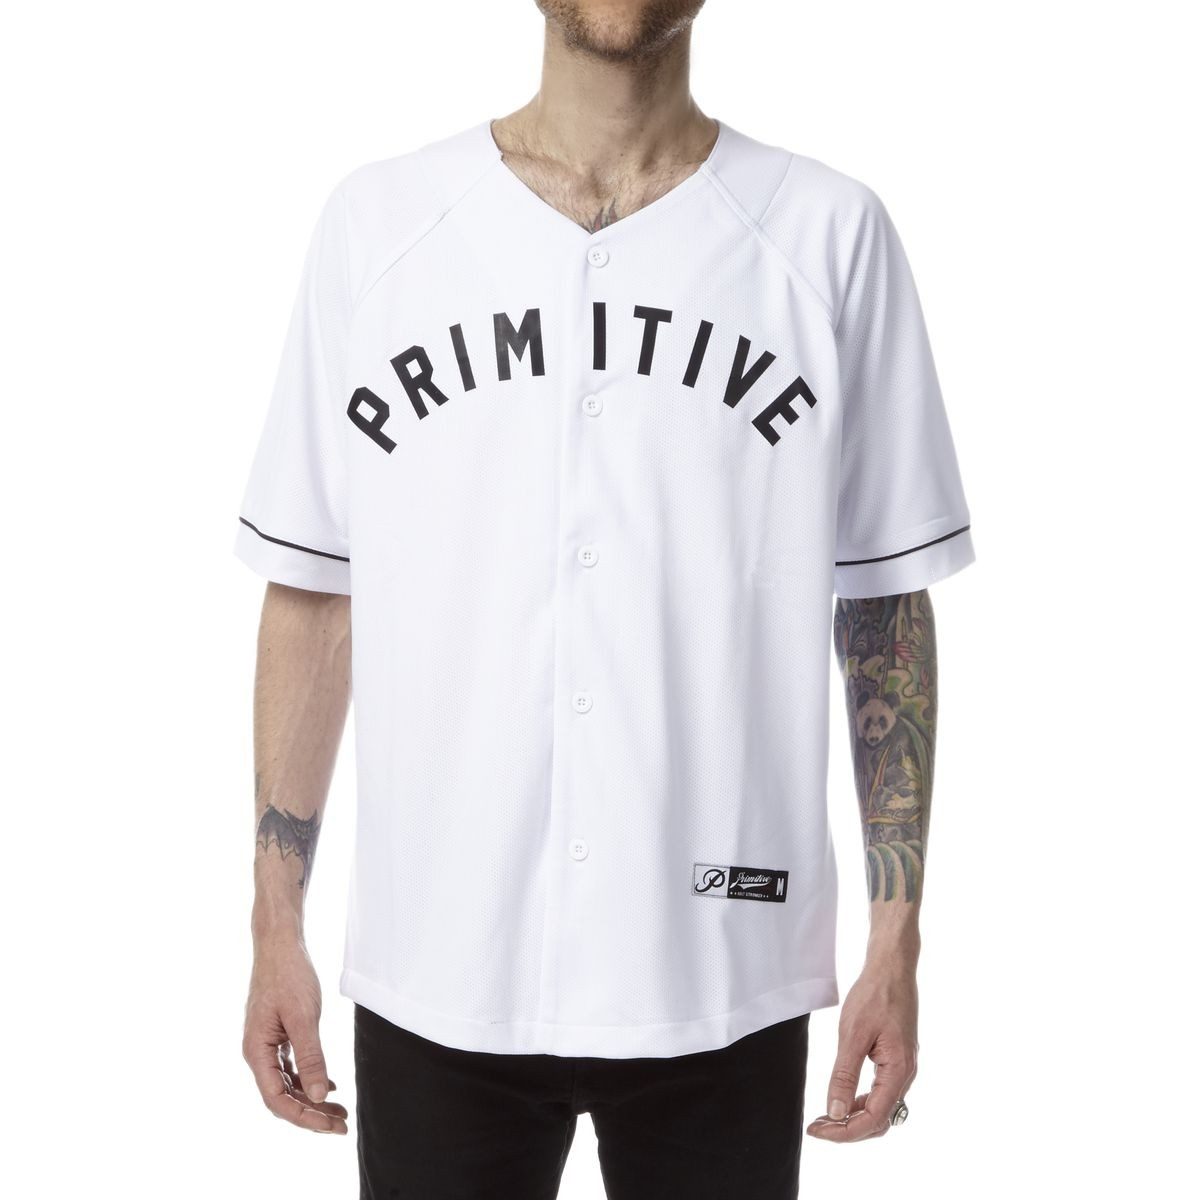 check out 7b294 1ed6d Primitive Underwood Baseball Jersey - White